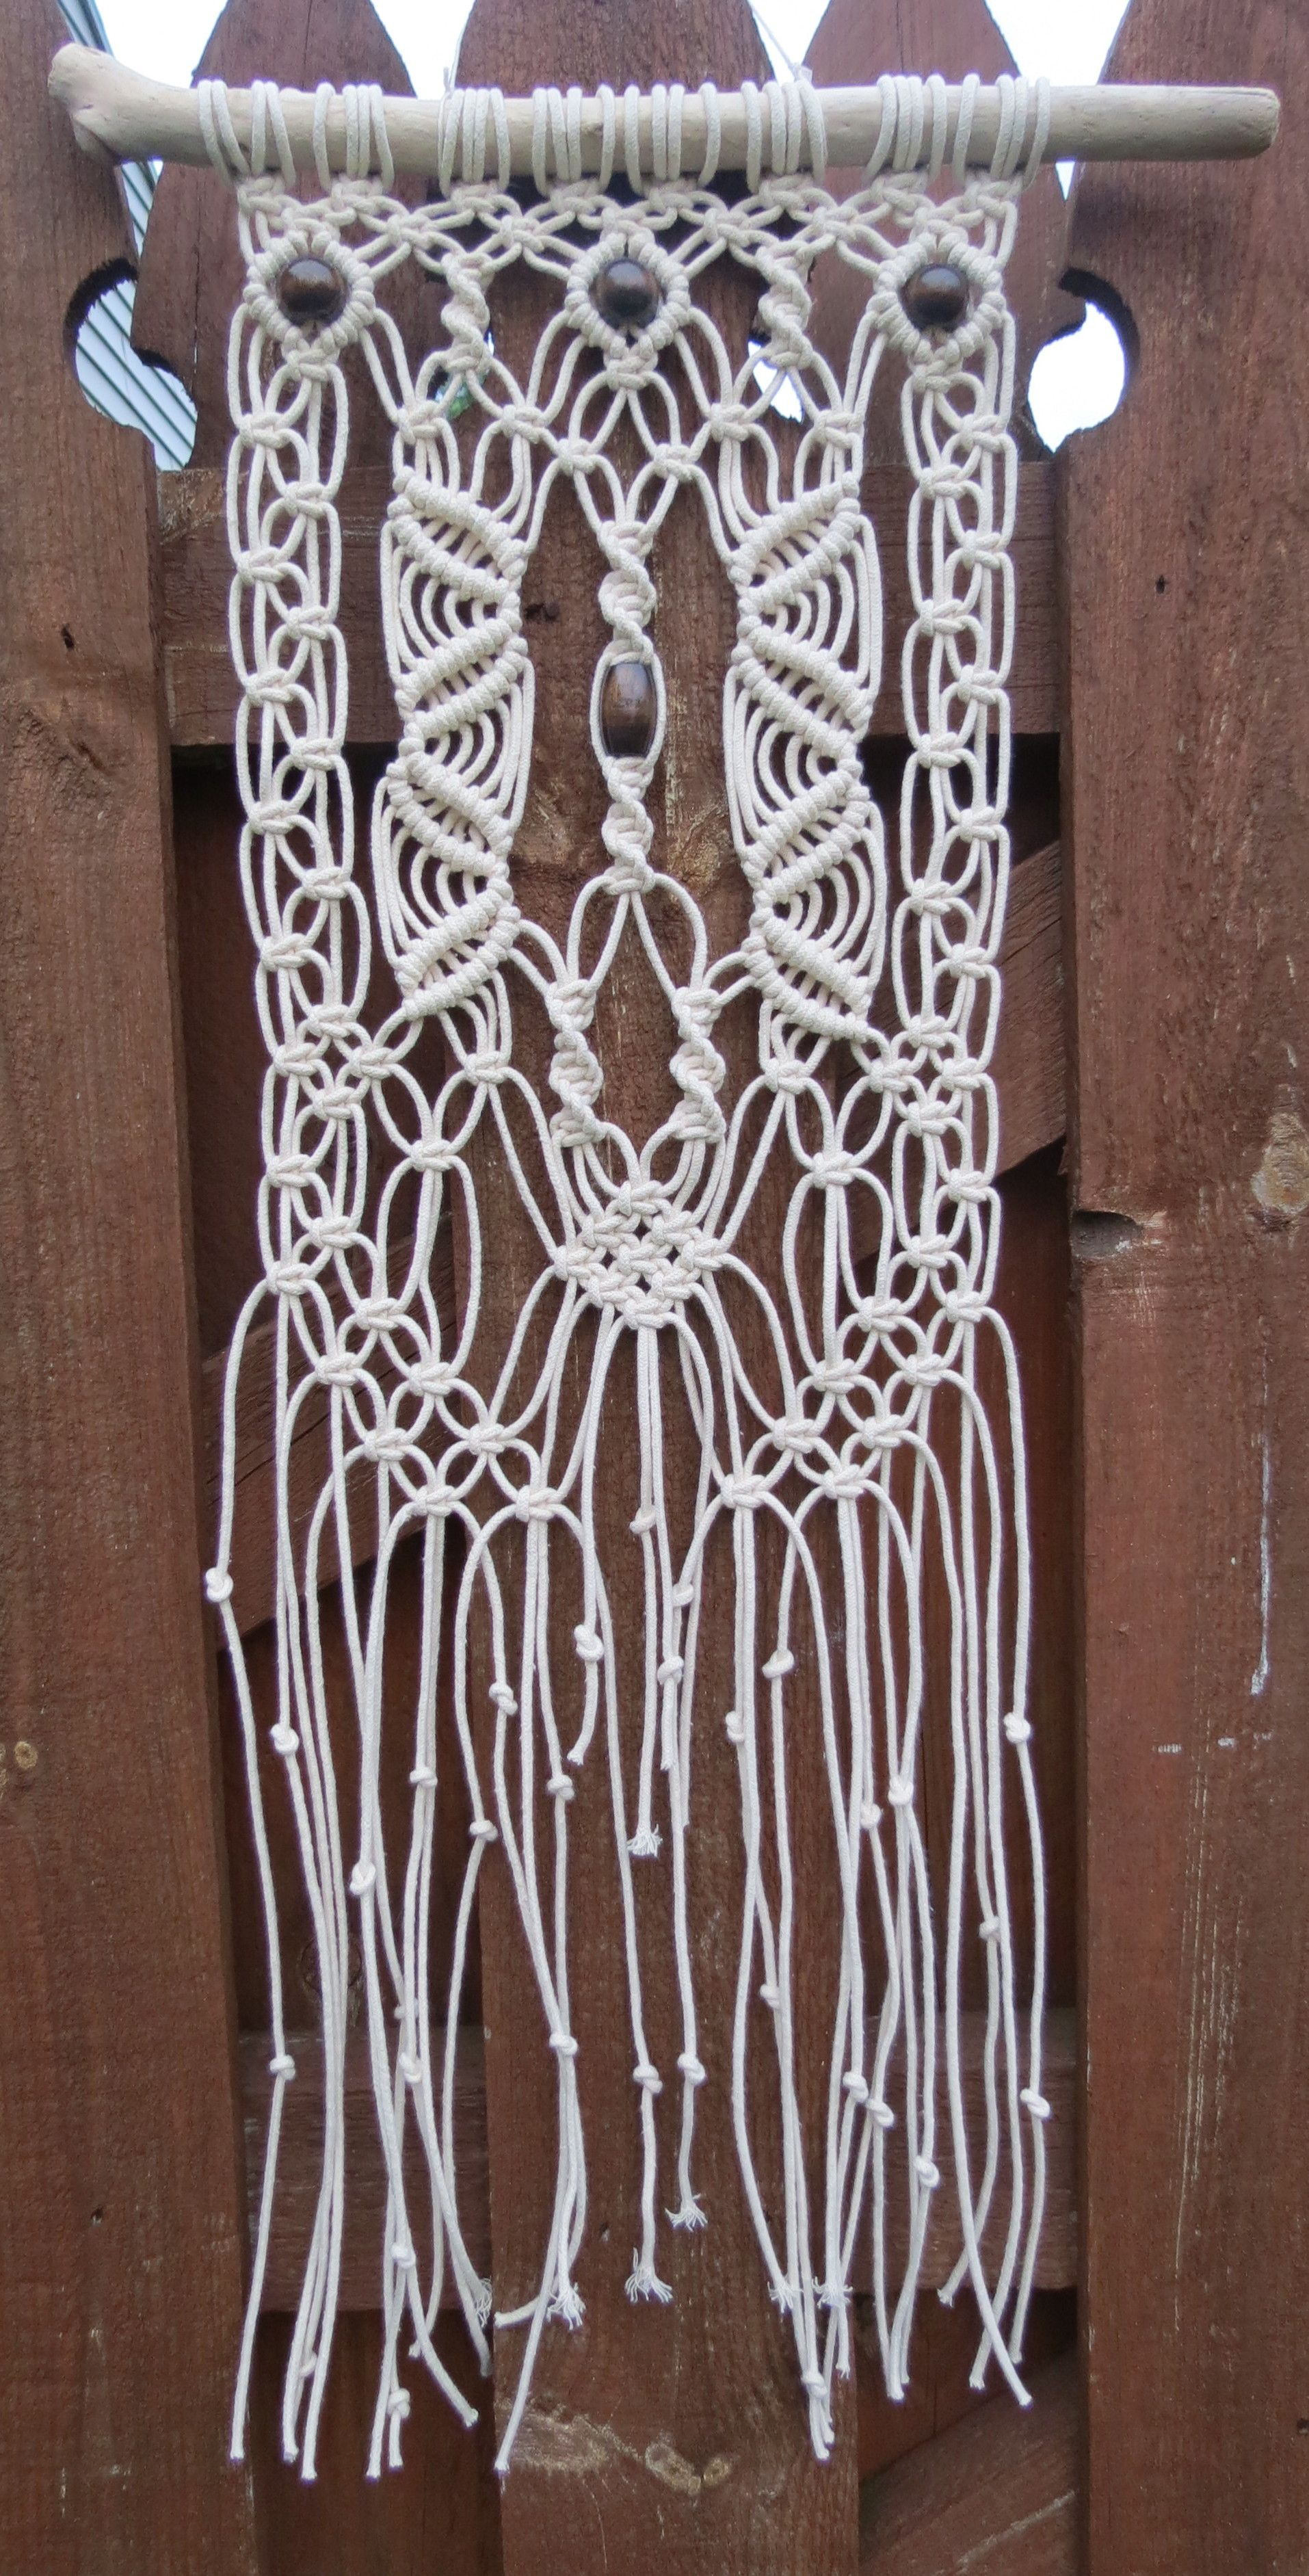 Driftwood Wall Hanging white cotton macrame wall hanging, macrame wall art, wall tapestry